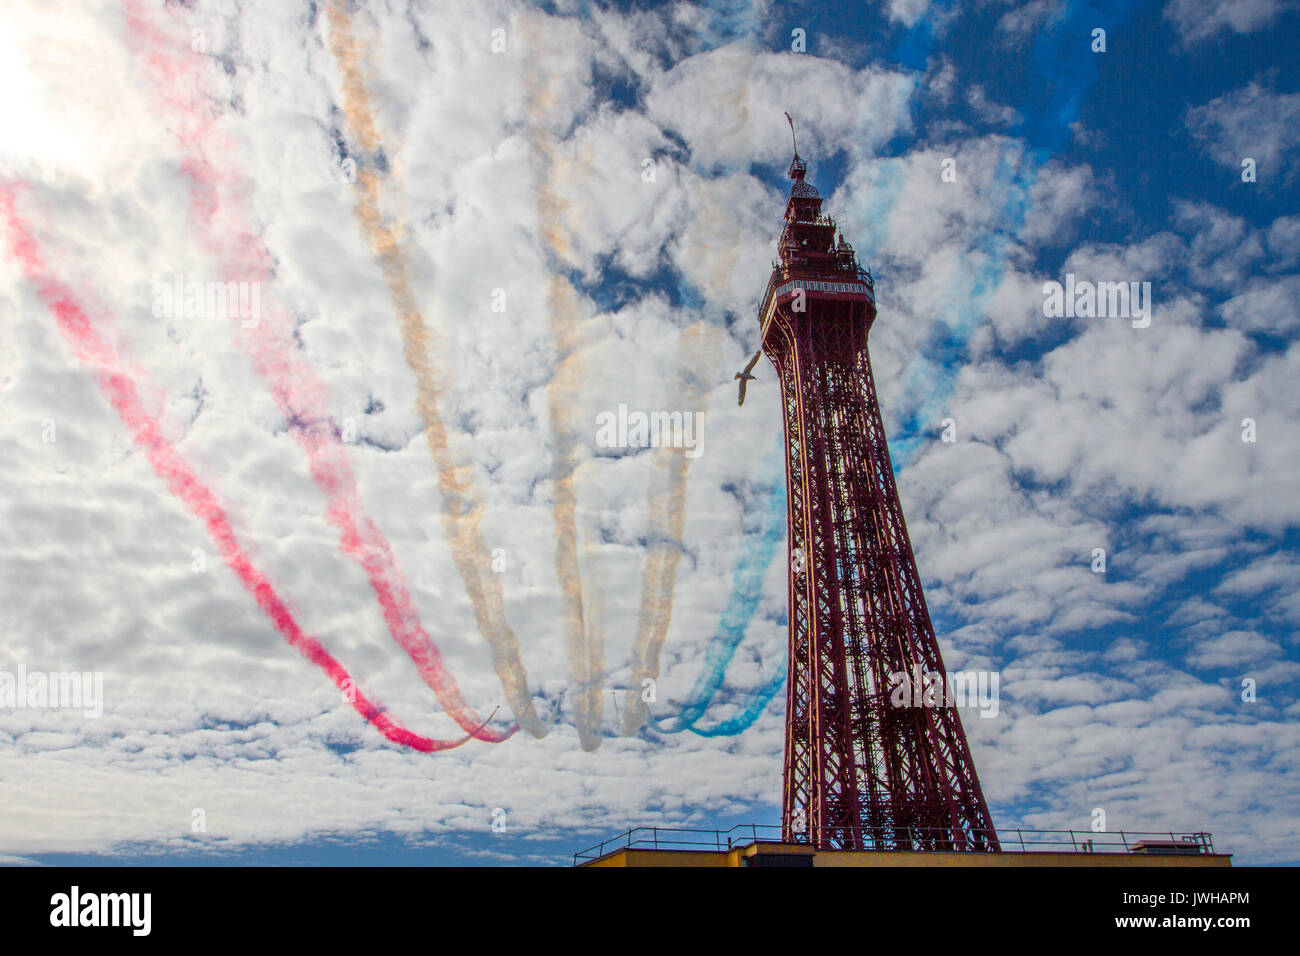 Blackpool, Lancashire, UK. 12th Aug, 2017. Red Arrows, aircraft, red, aviation, flight, airshow, jet, plane, flying, Stock Photo